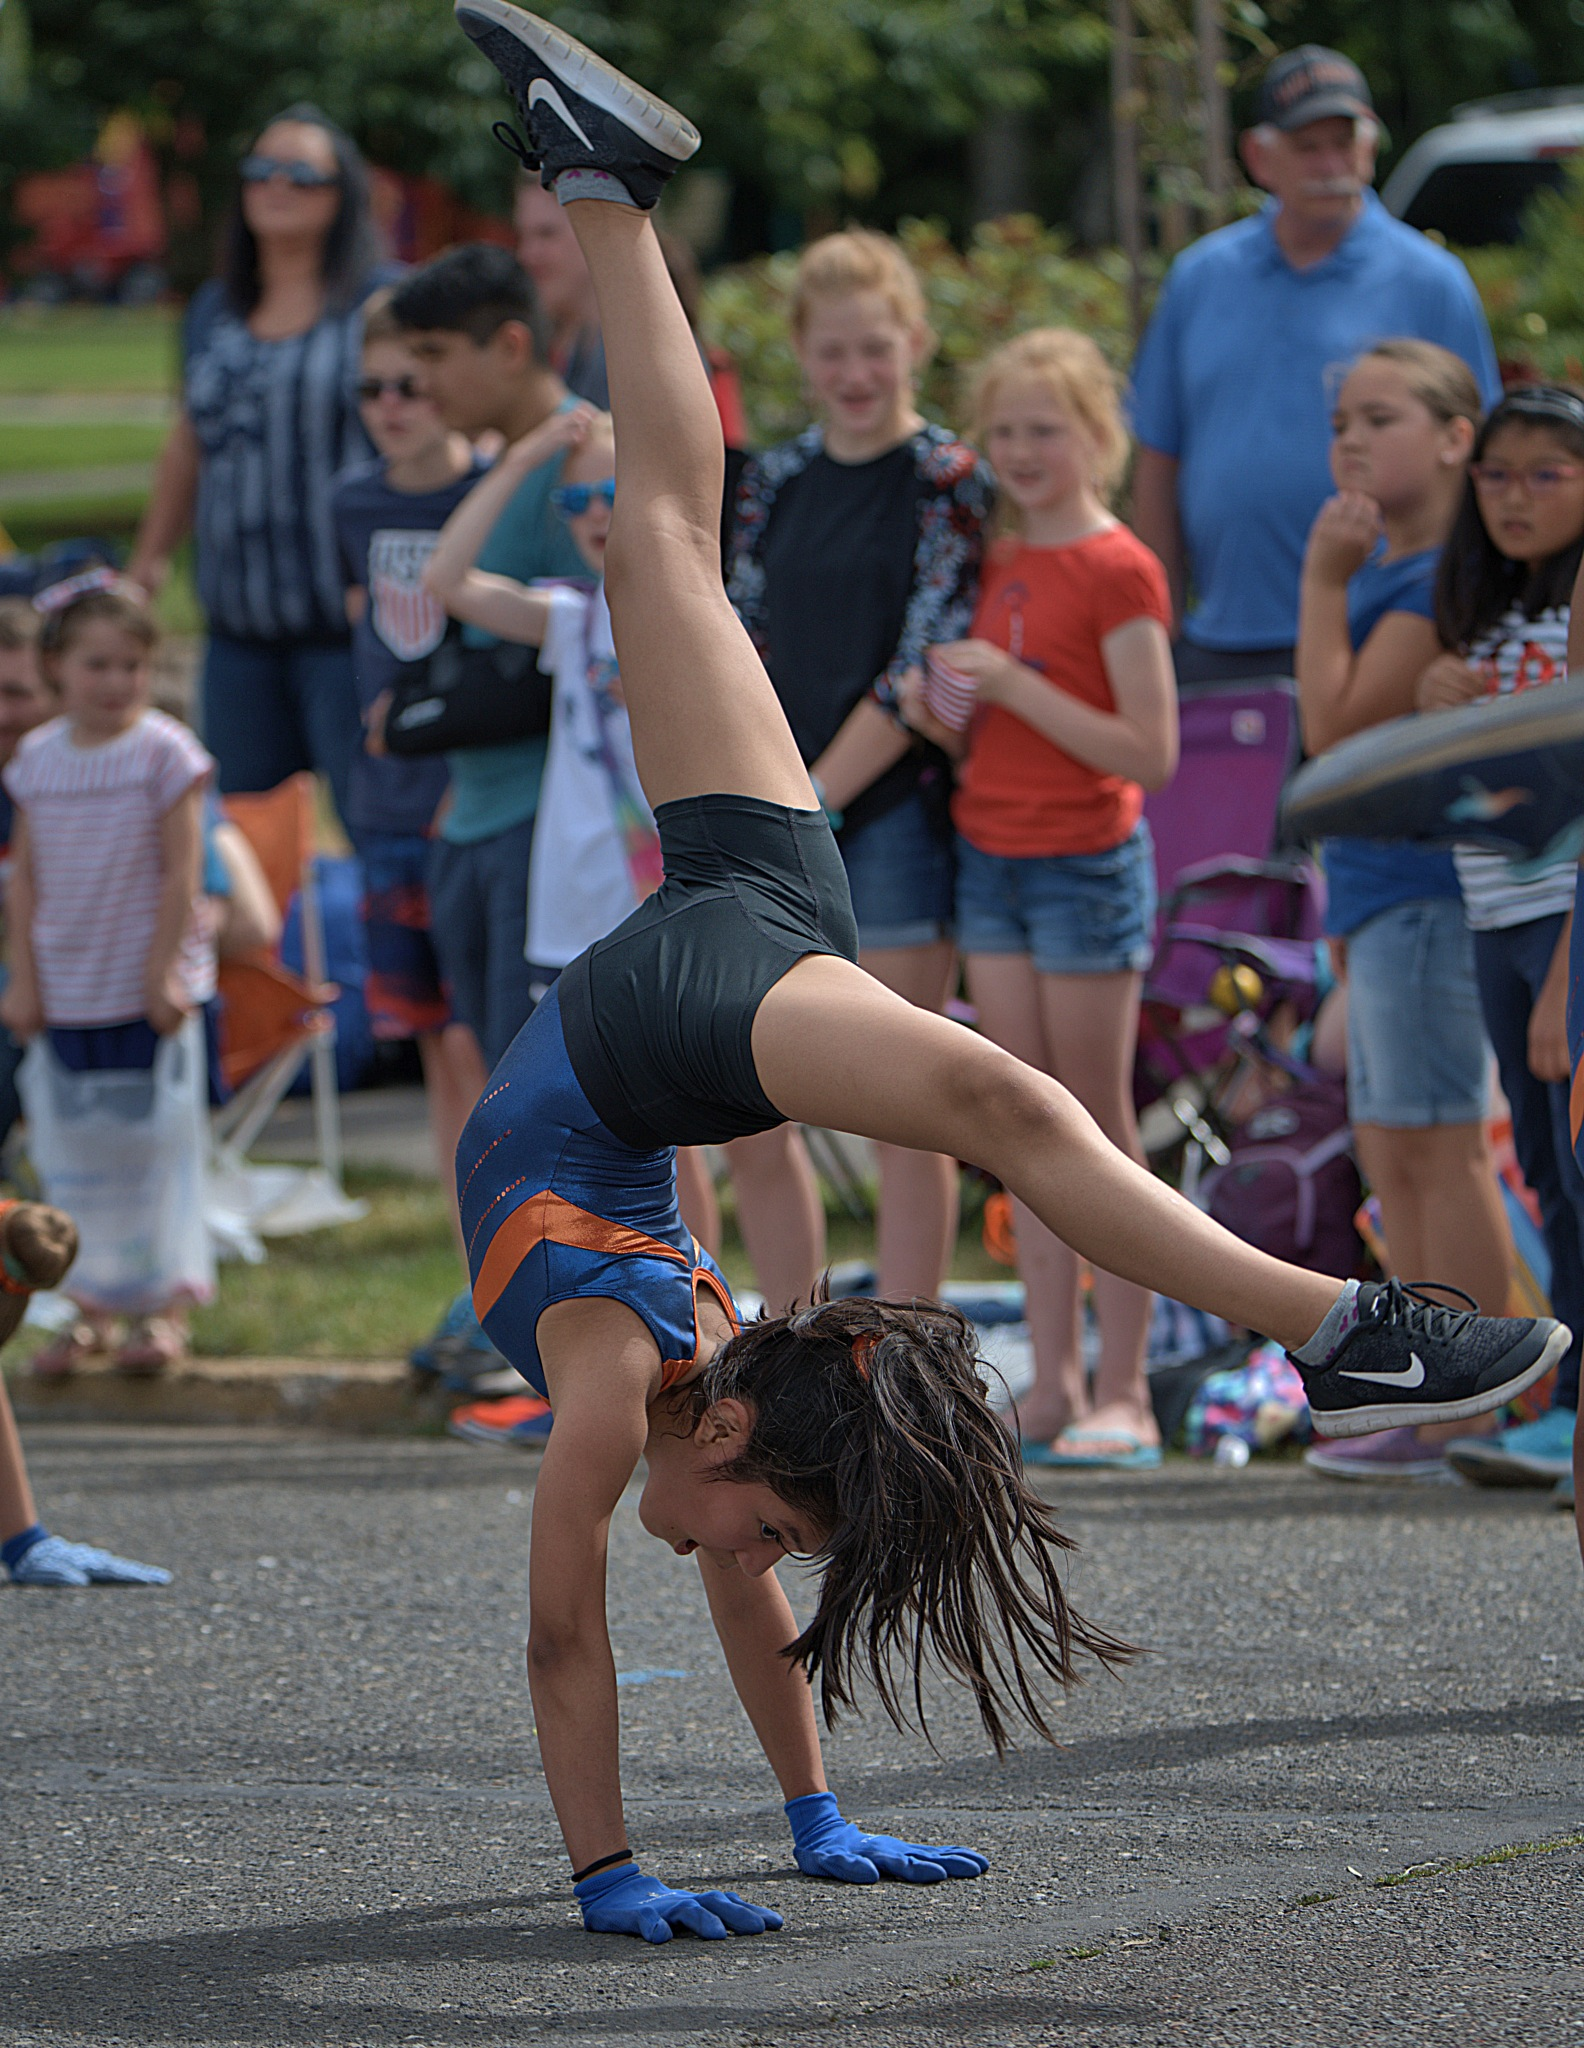 Gymnastic Talent  by pscottwong